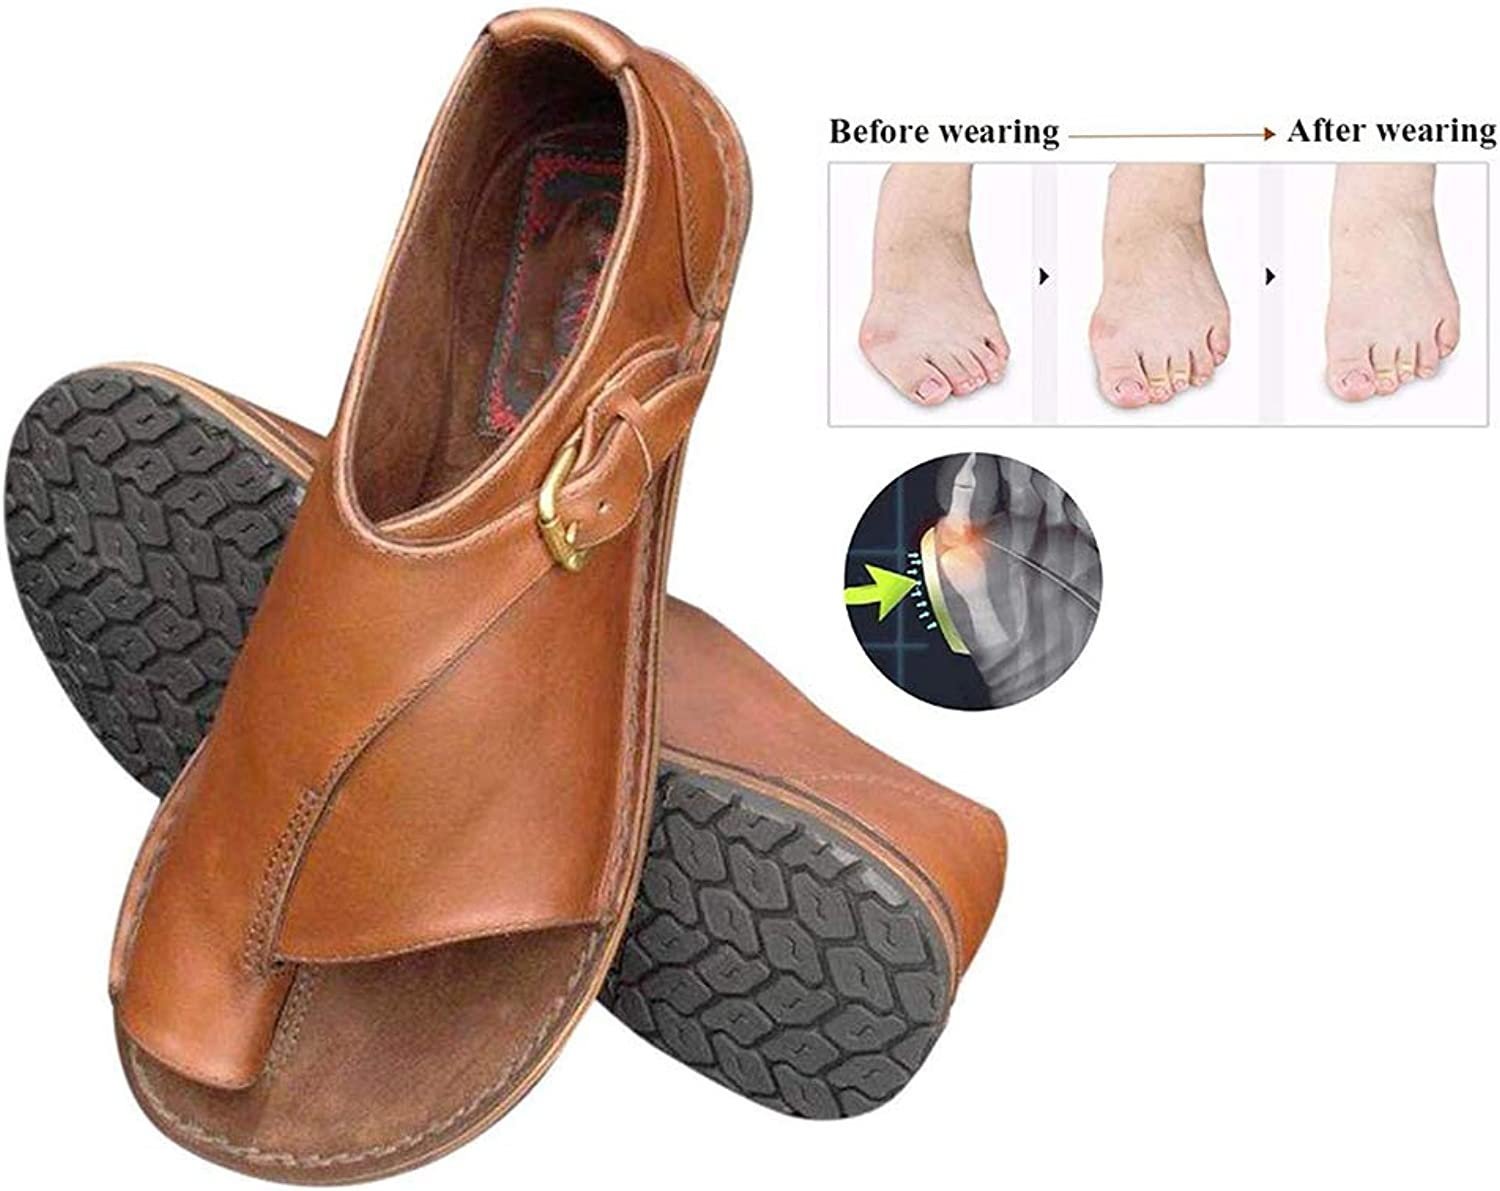 Women Sandals Summer Foot Correction shoes Flat Sole PU Leather Slippers Non Slip Wear Resistant Comfortable Slippers for Orthopedic Big Toe Bone Correction Beach Travel (Brown),Brown,36